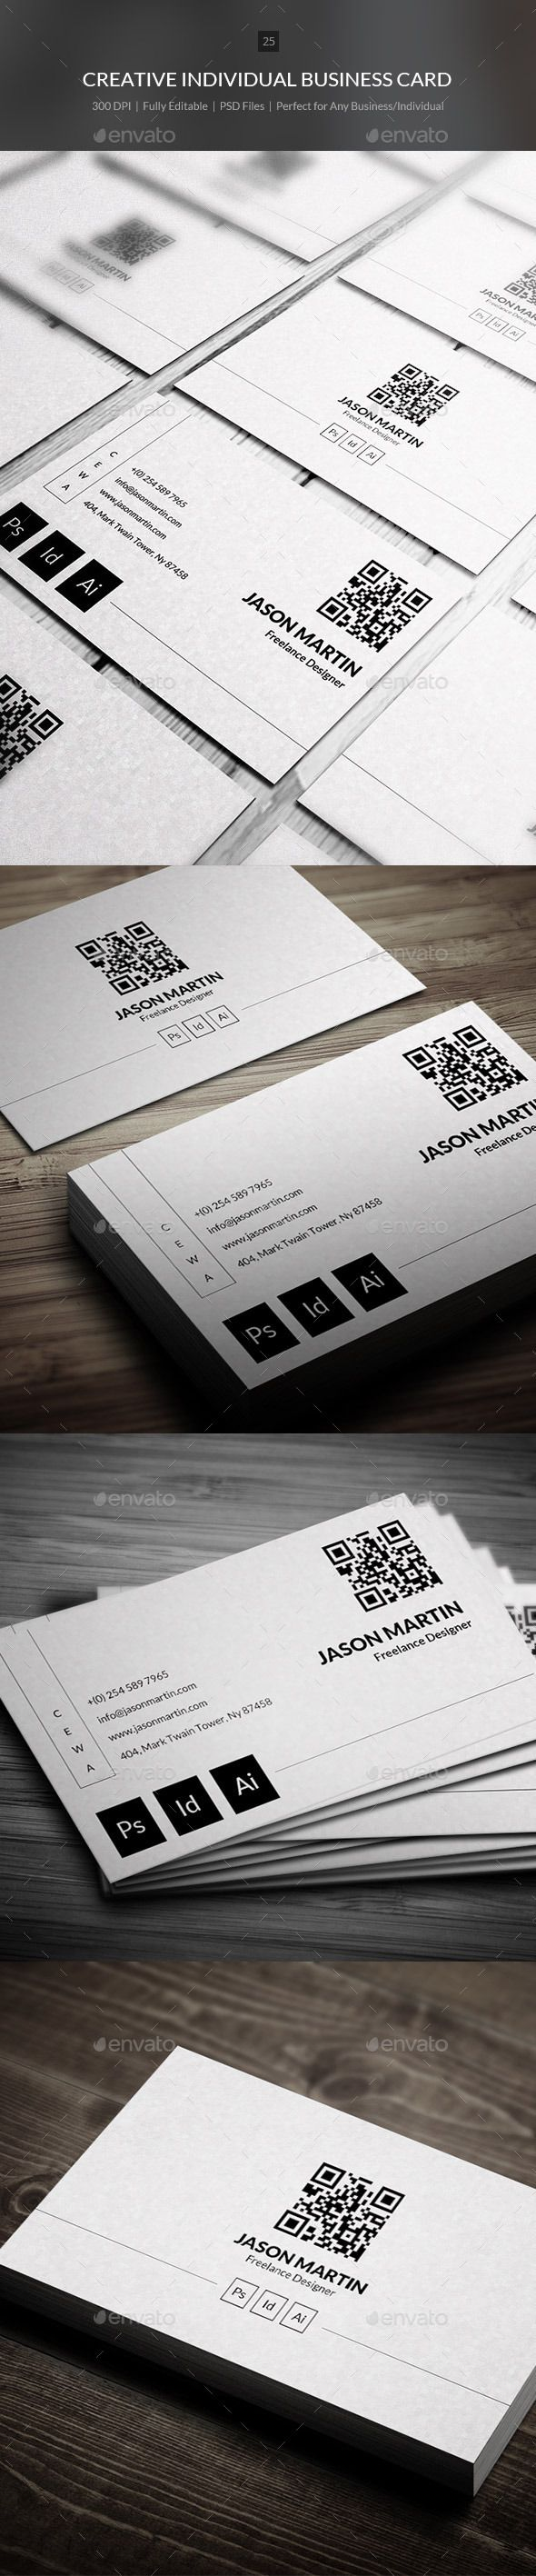 Creative Individual Business Card Tempalte #design Download: http://graphicriver.net/item/creative-individual-business-card-25/9630485?ref=ksioks